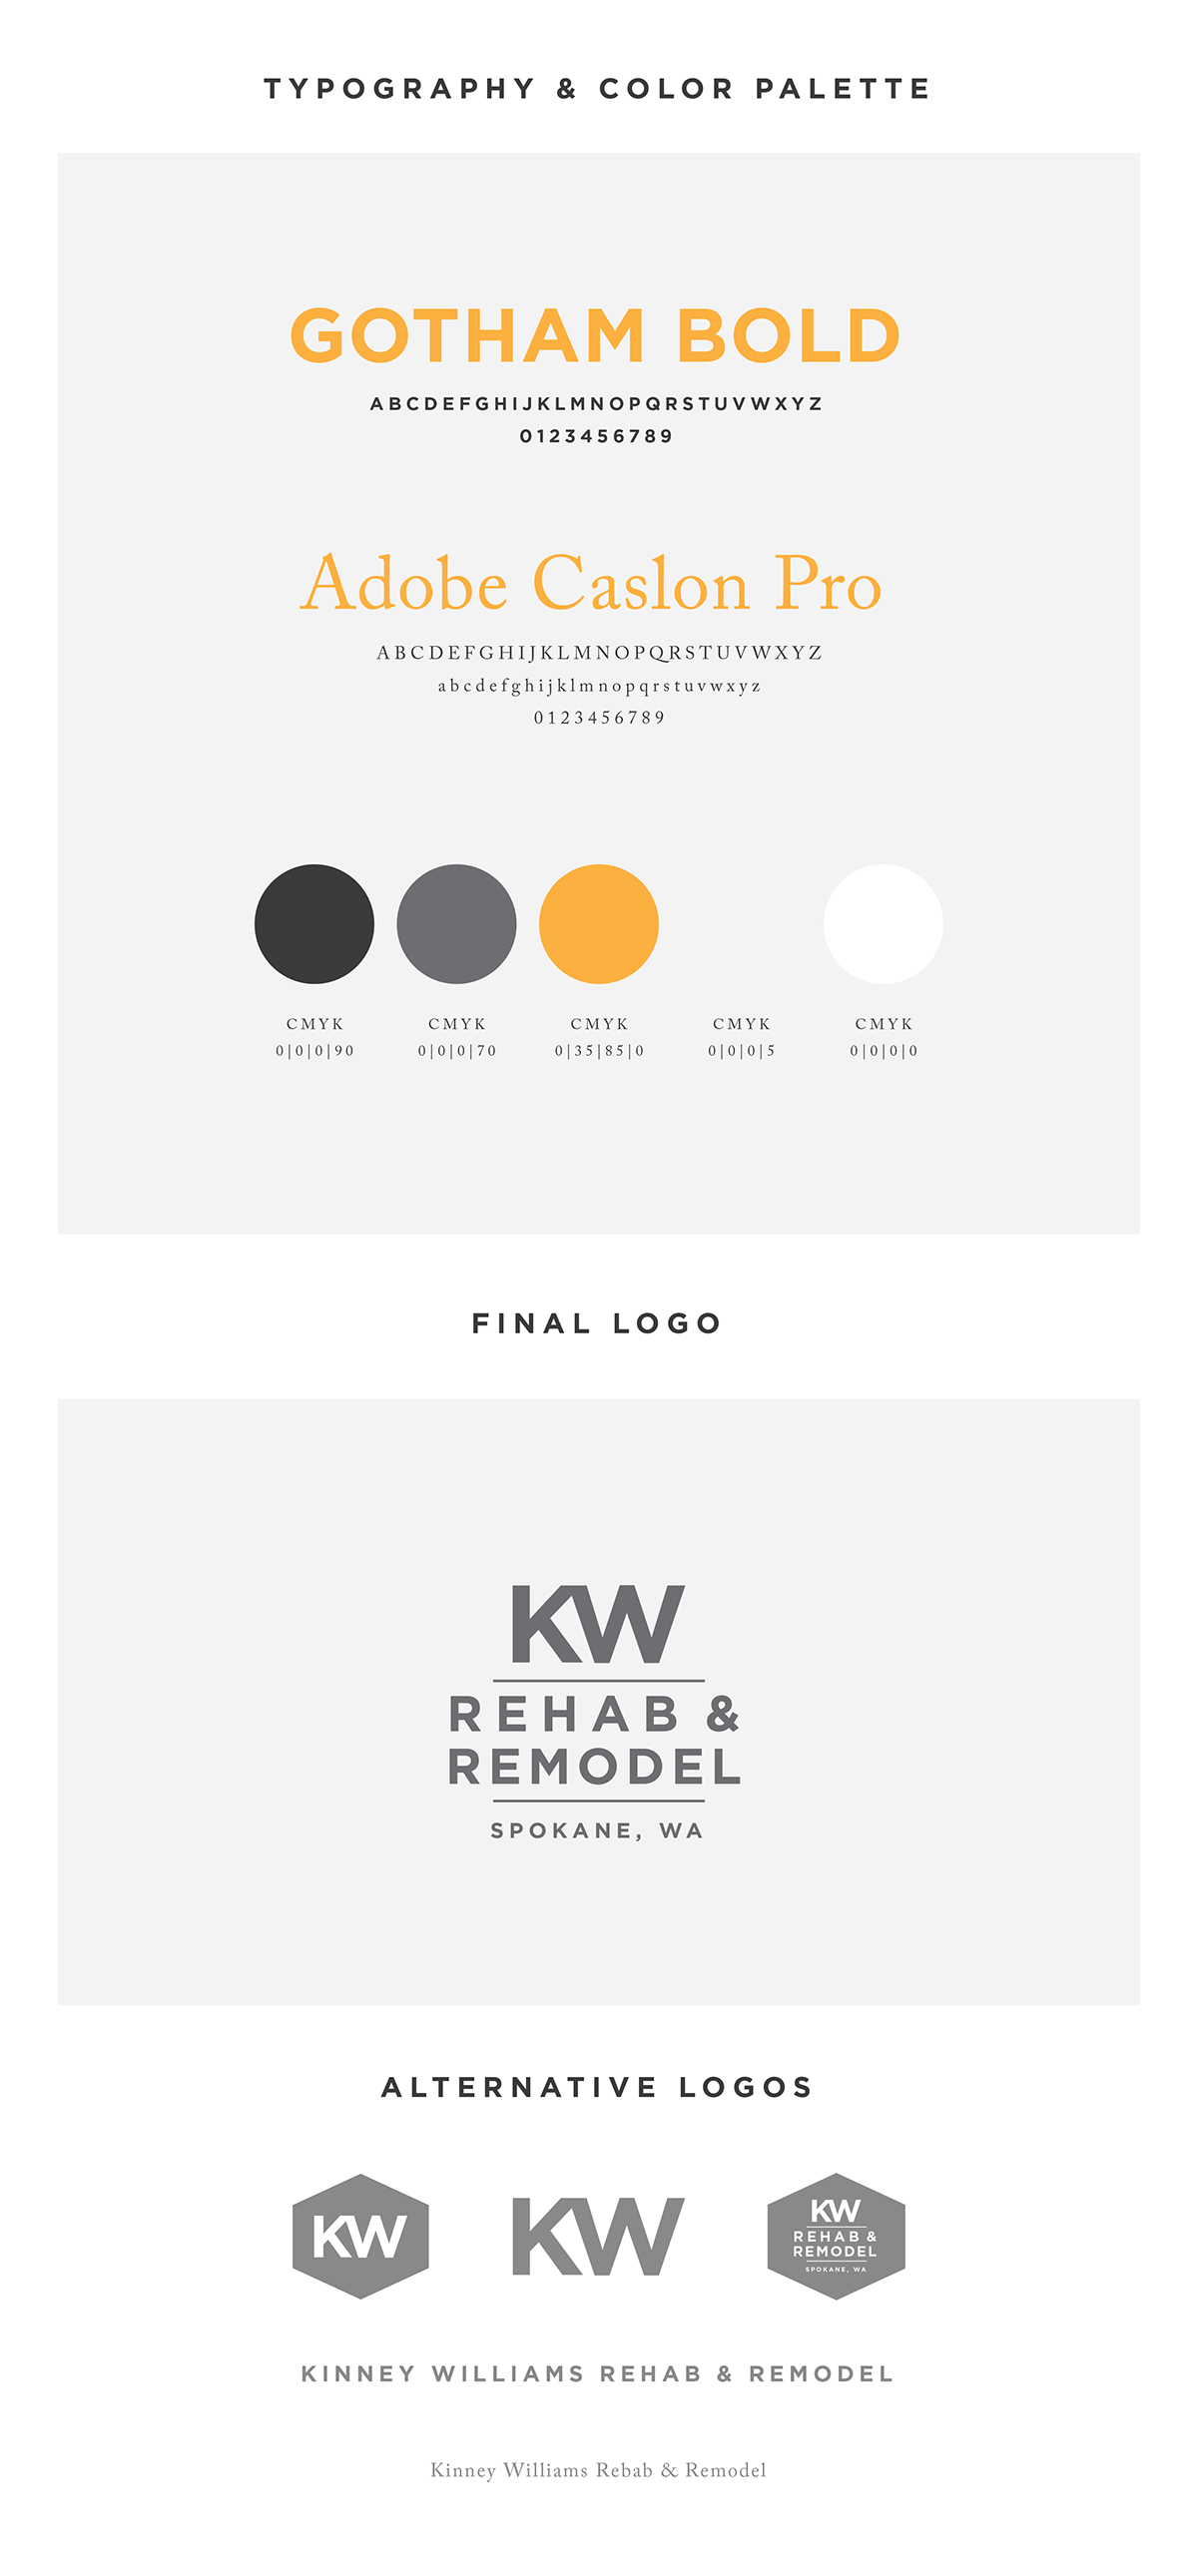 KW Rehab & Remodel on Behance